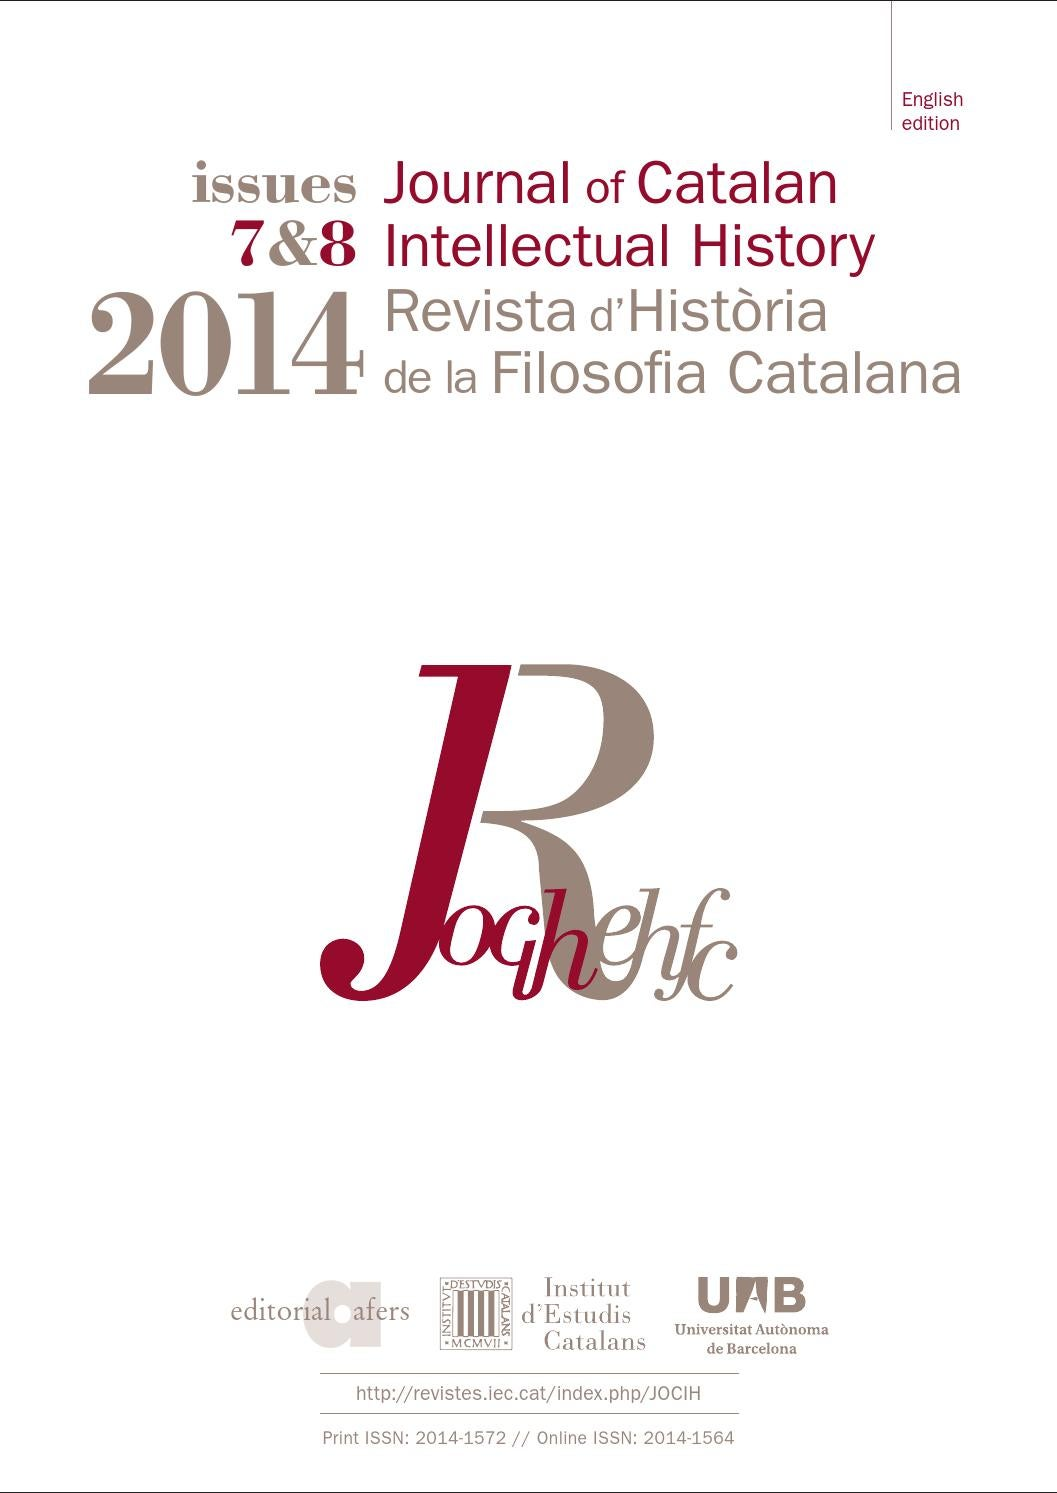 Journal of Catalan Intellectual History by Institut d